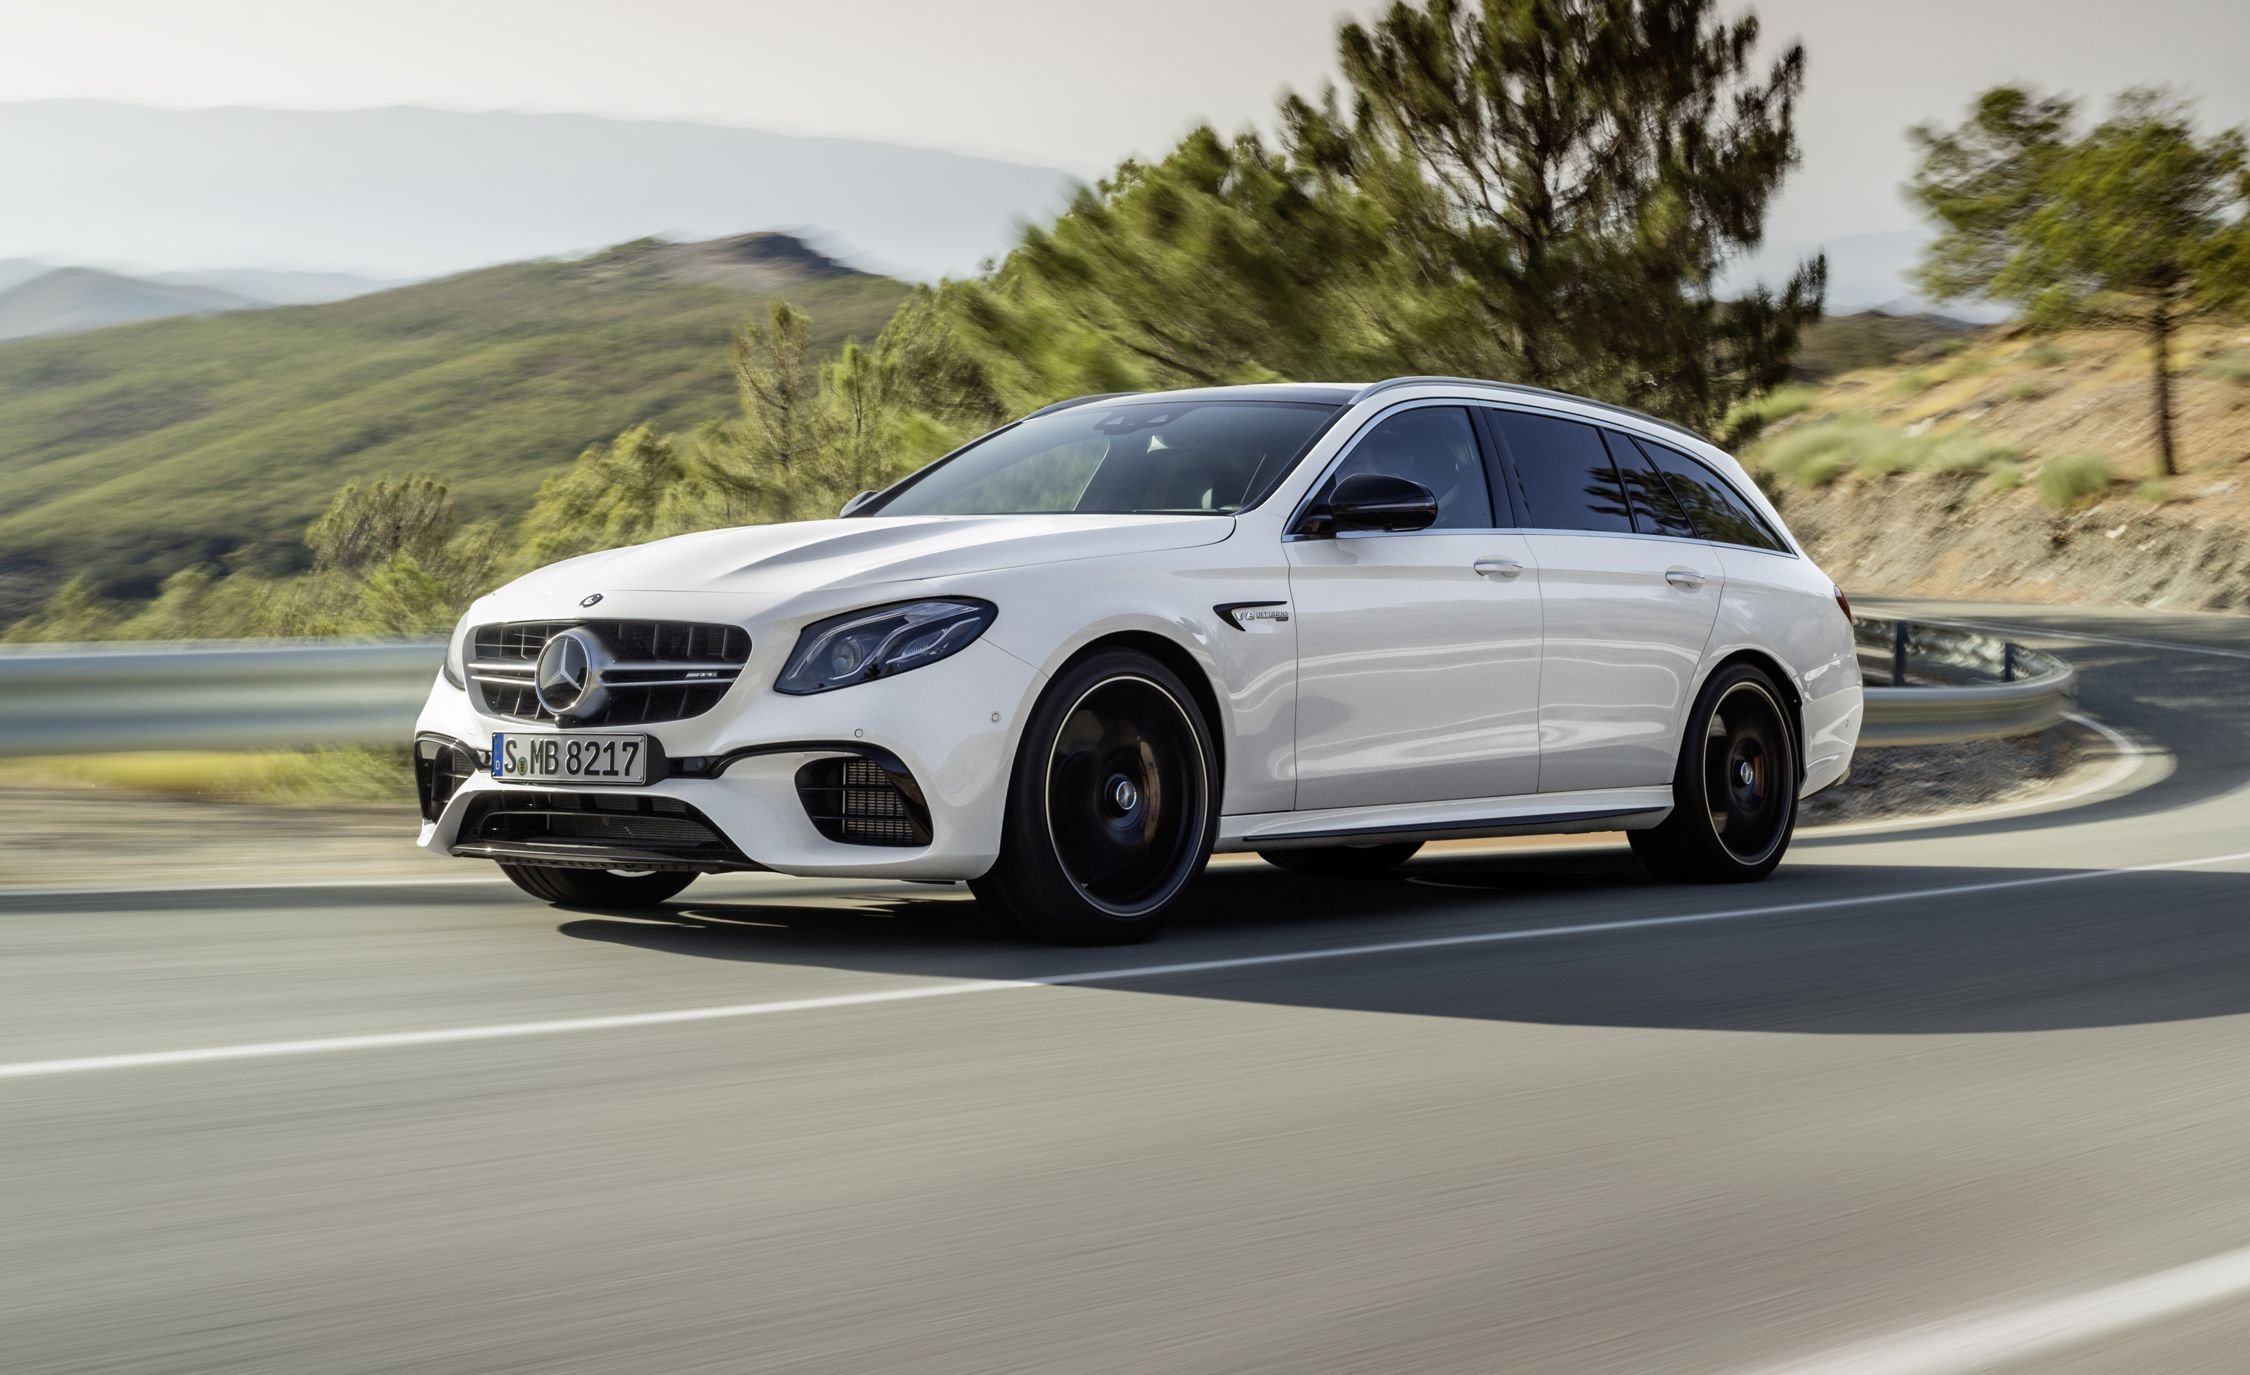 2018 Mercedes-AMG E63 S Wagon: All Hail the Unicorn